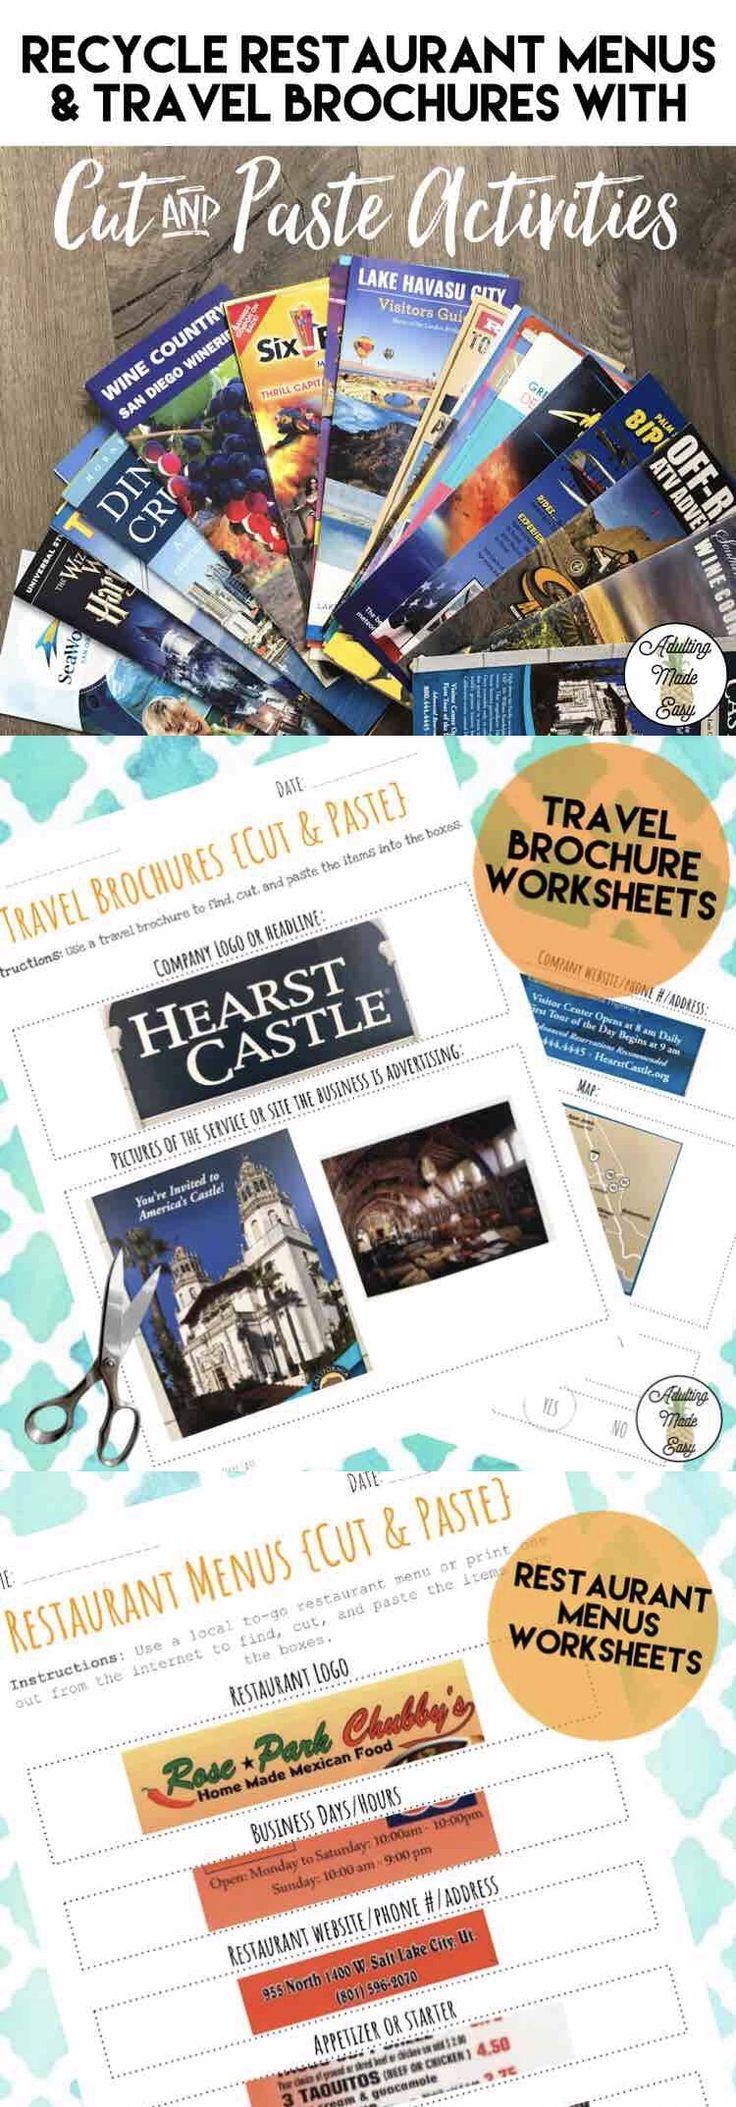 Recycle restaurant menus & travel brochures with this cut and paste reading activity for special education life skills students. #lifeskills #reading #sped #specialeducation #cutandpaste #recycle #brochures #restaurantmenu